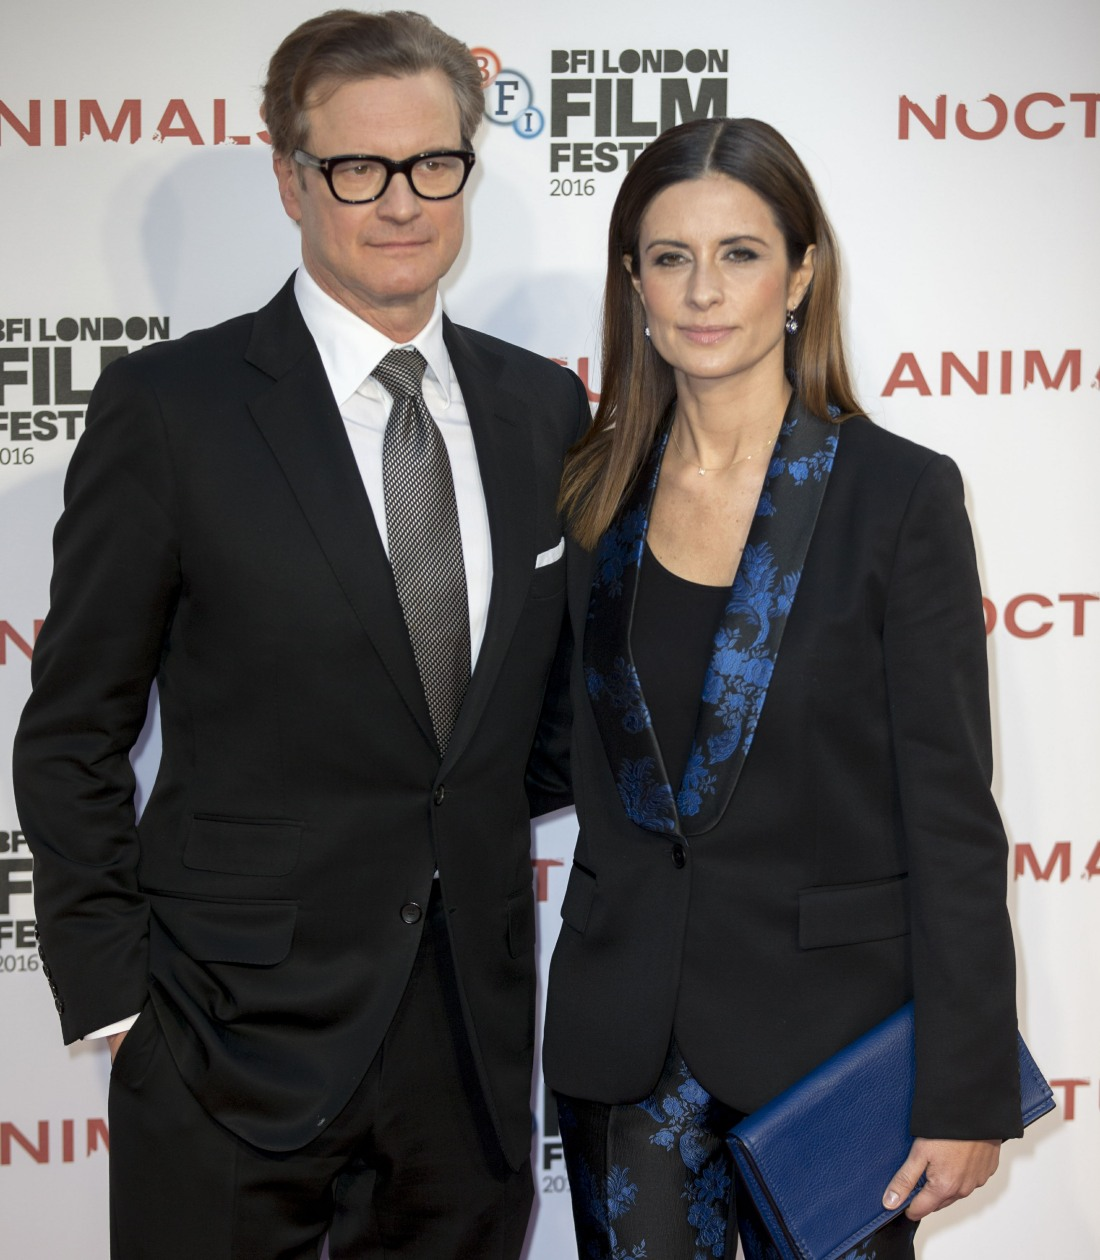 'Nocturnal Animals' premiere, London Film Festival, UK